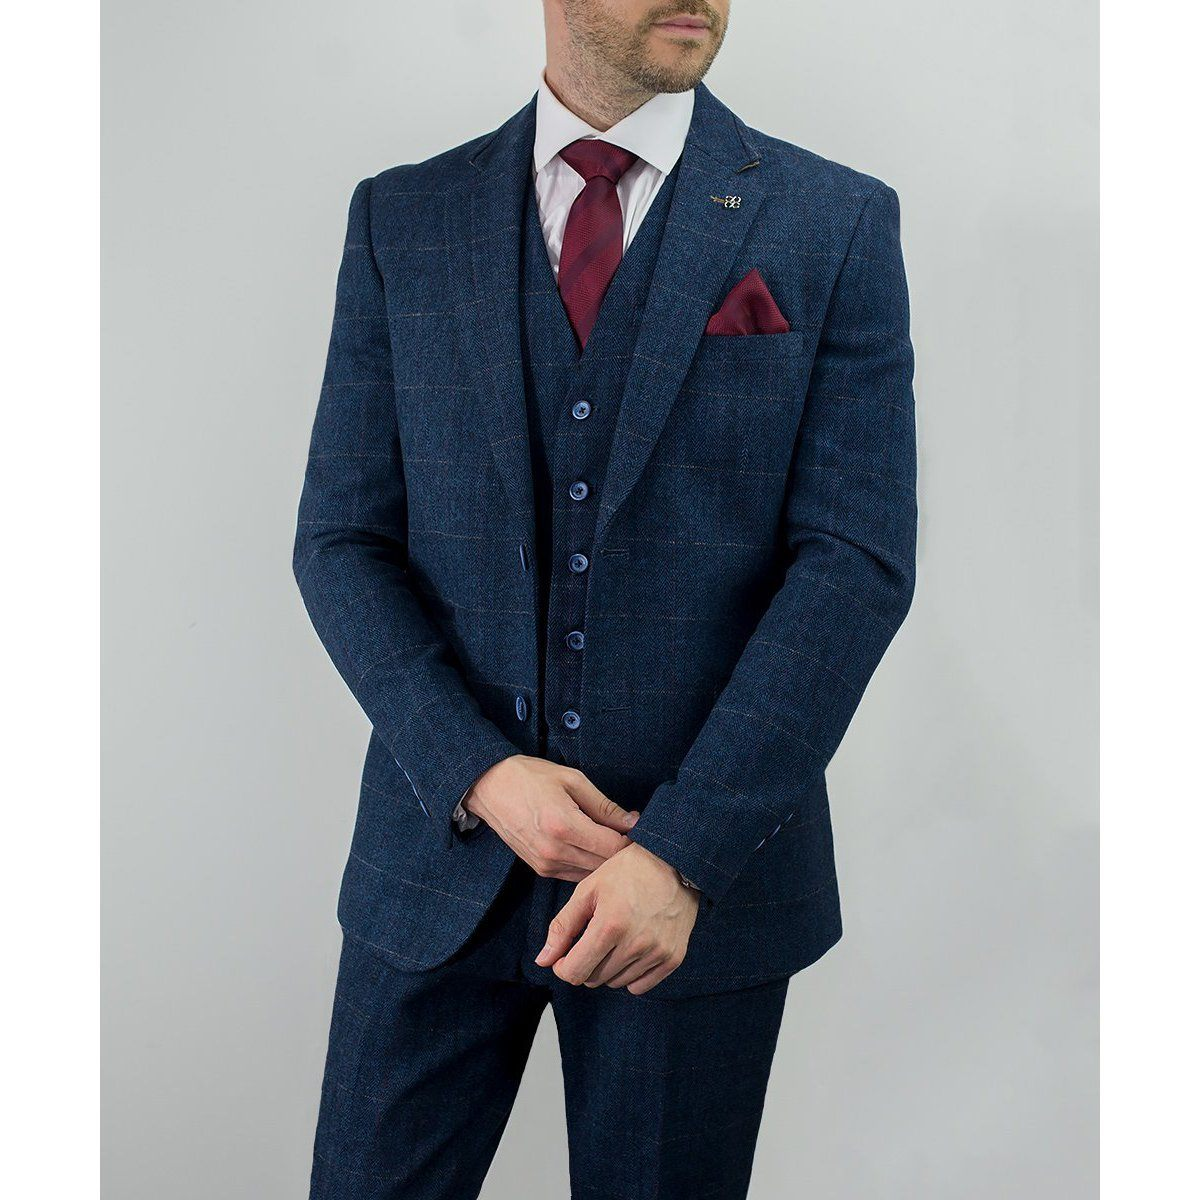 Navy Tweed Check Jacket - Leonard Silver